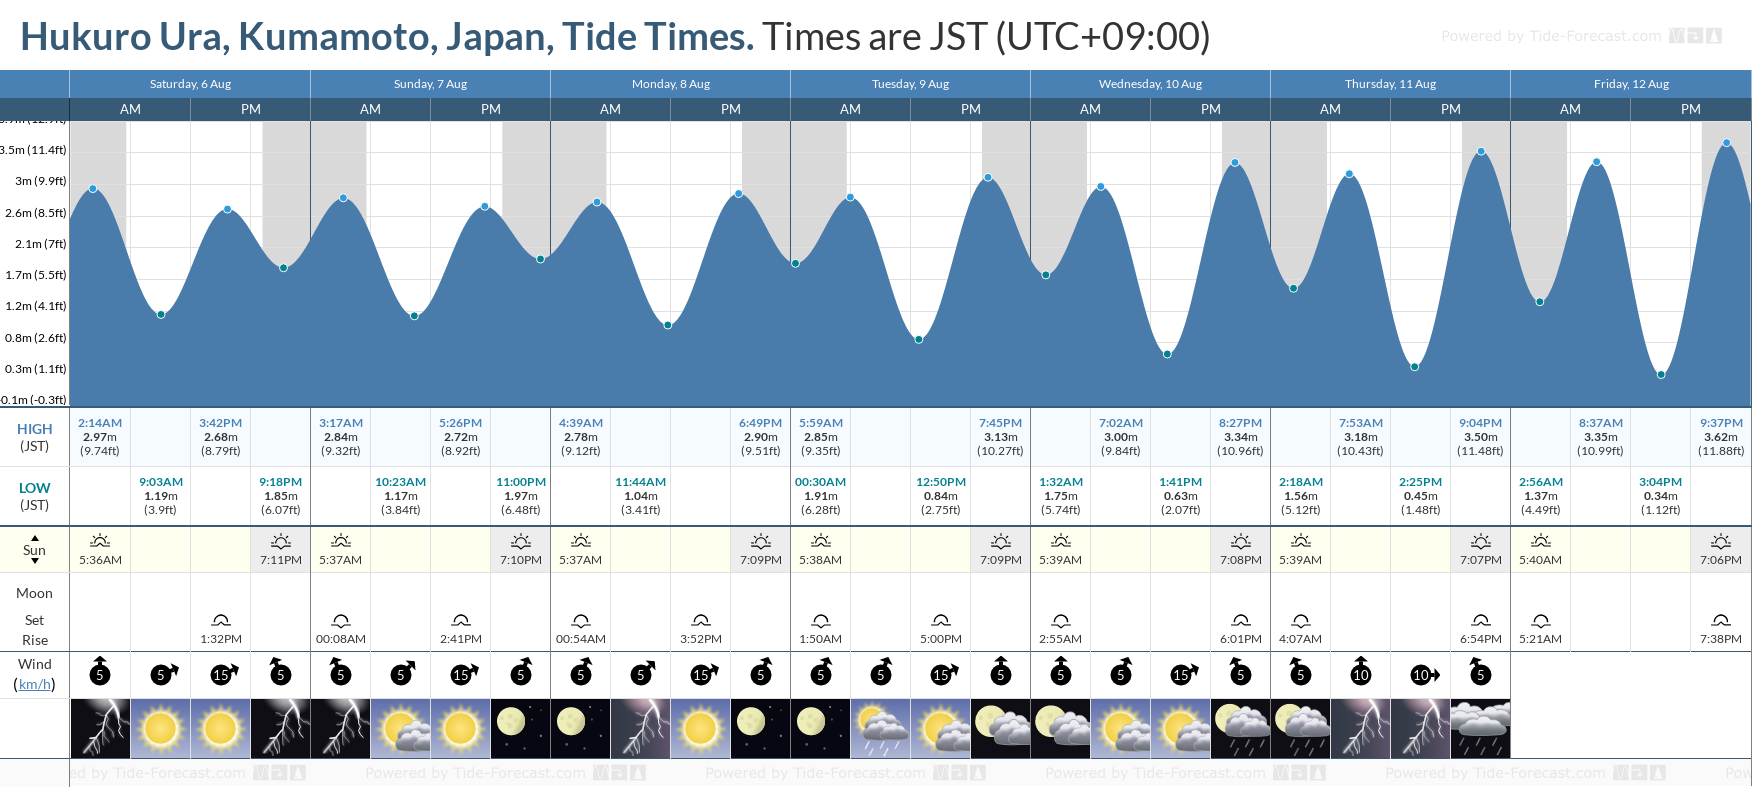 Hukuro Ura, Kumamoto, Japan Tide Chart including high and low tide tide times for the next 7 days